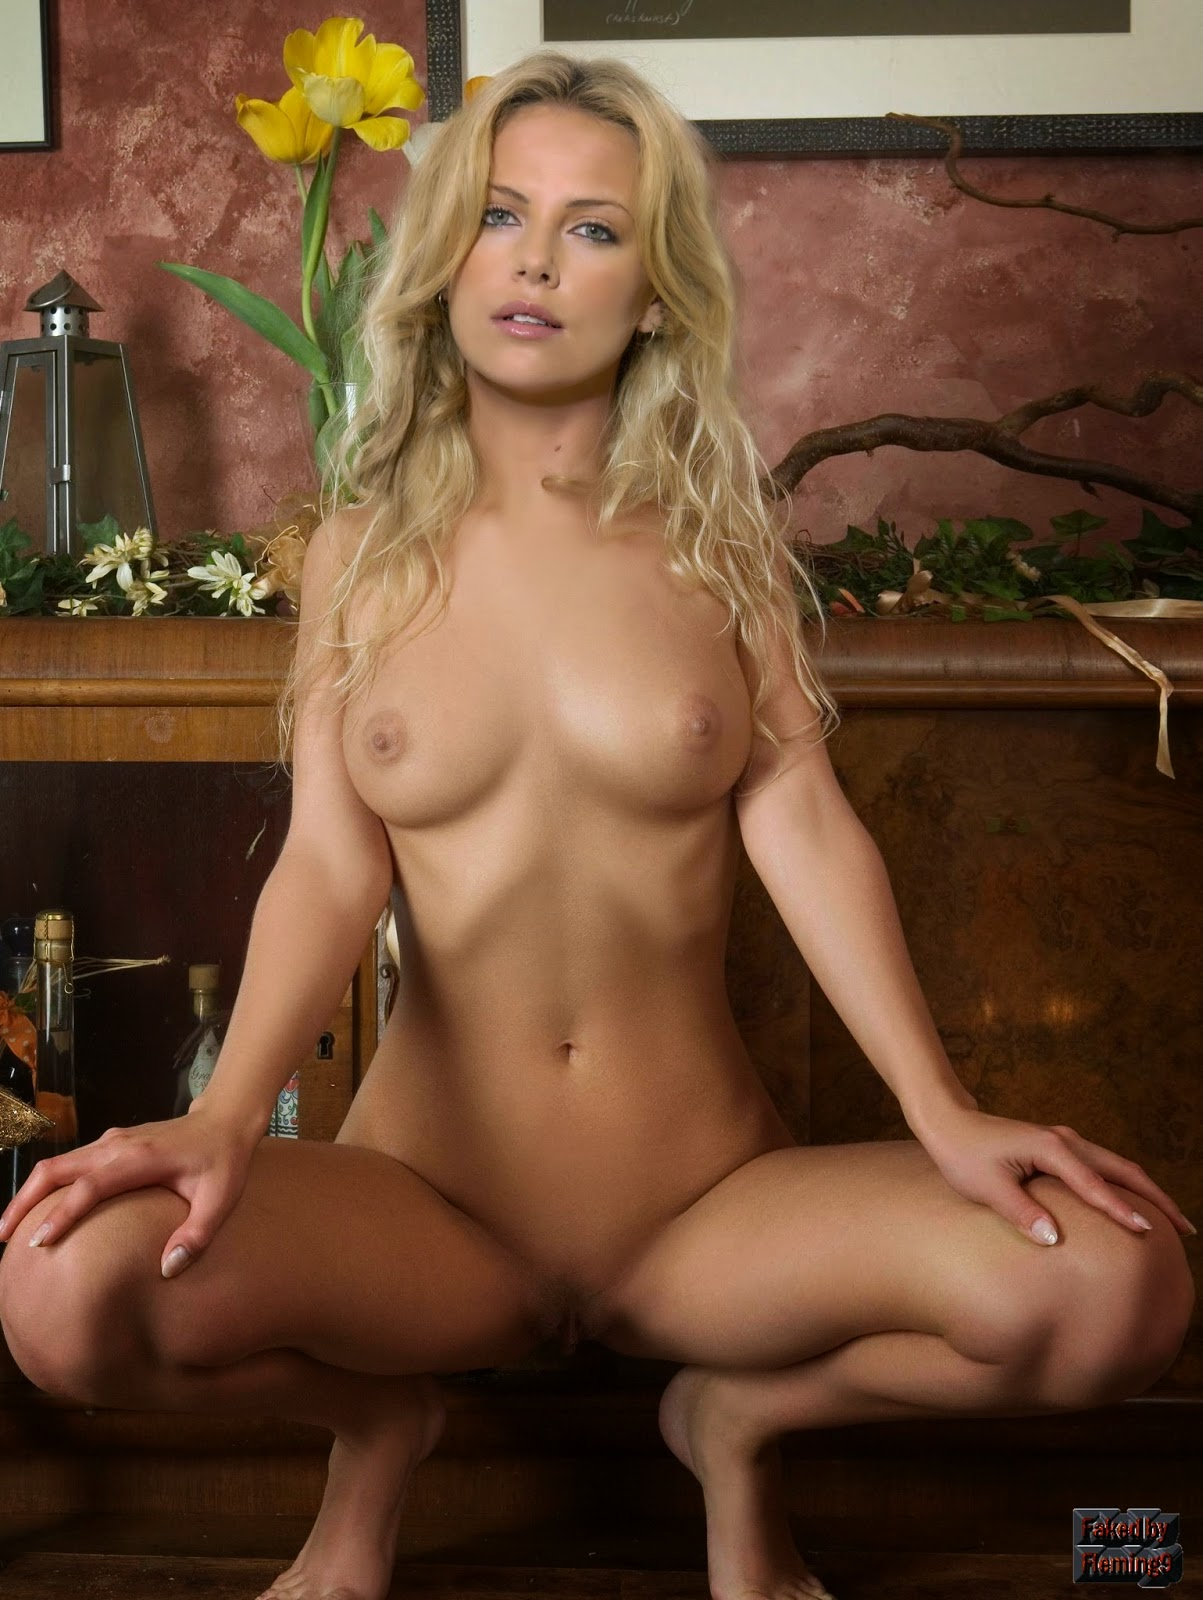 hot chicks doing nude yoga